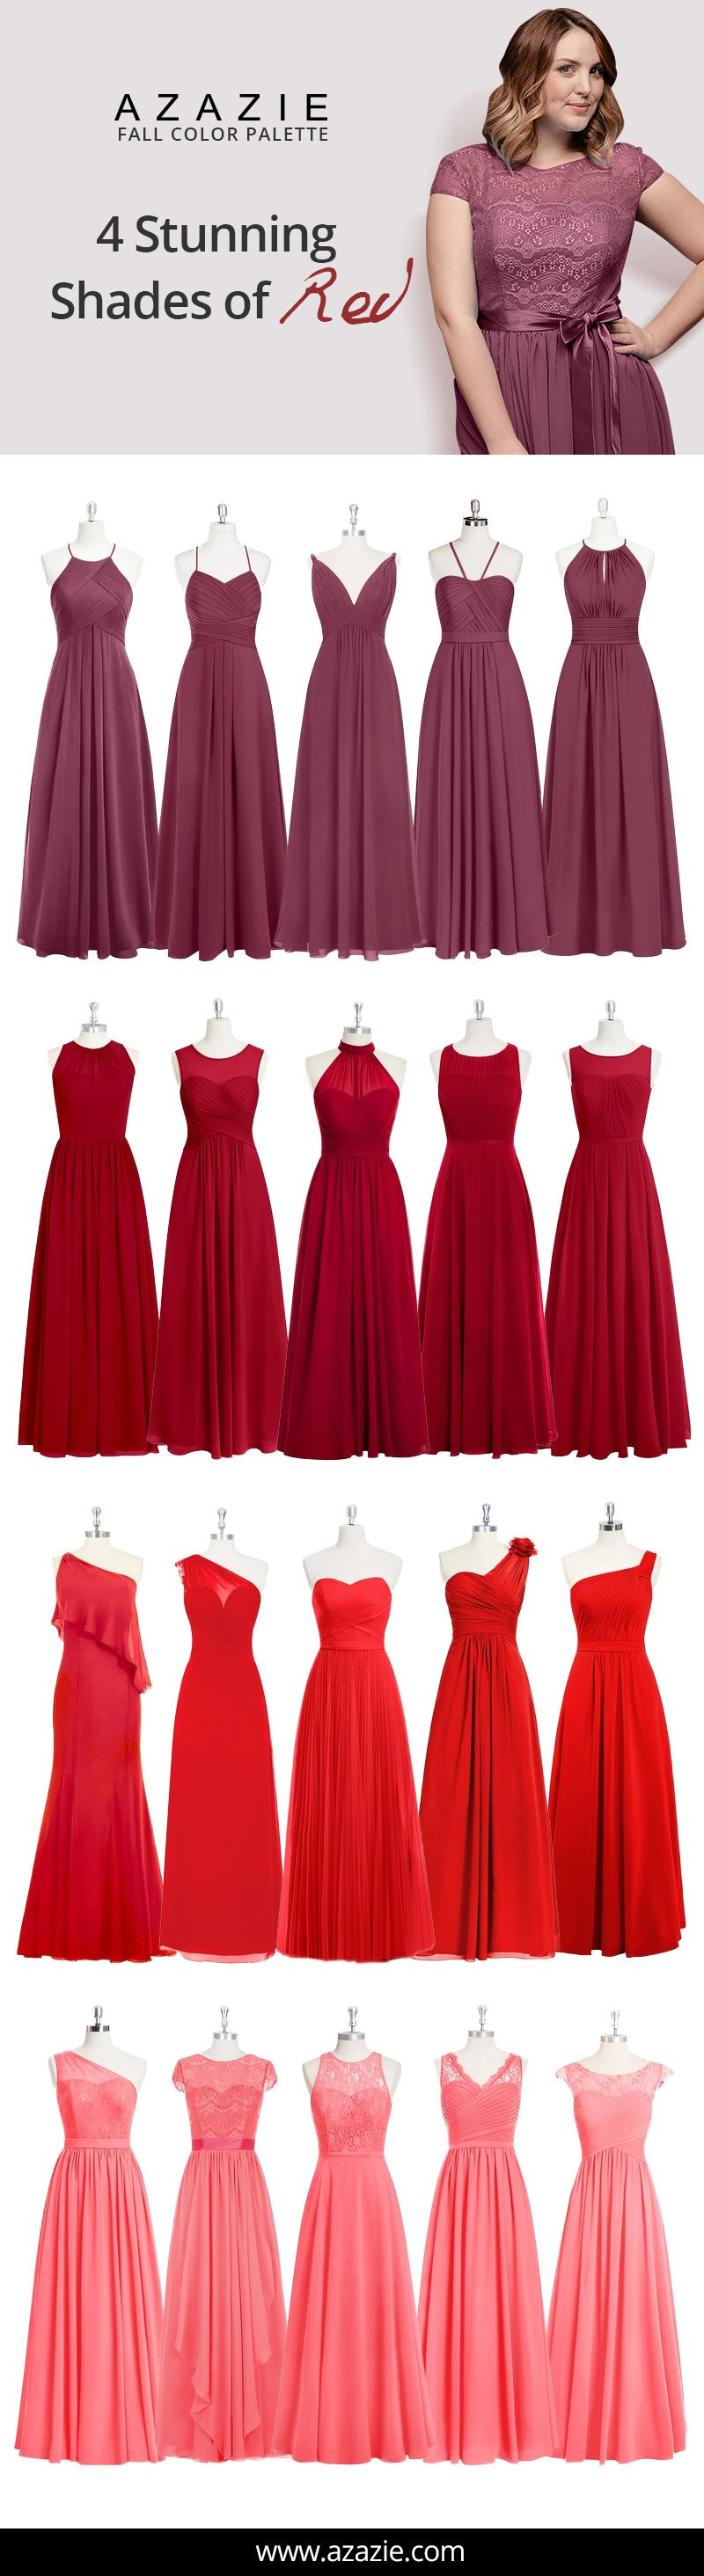 Attention autumn brides mulberry burgundy red watermelon are attention autumn brides mulberry burgundy red watermelon are quite the popular shades bridesmaid dress colorsred ombrellifo Gallery